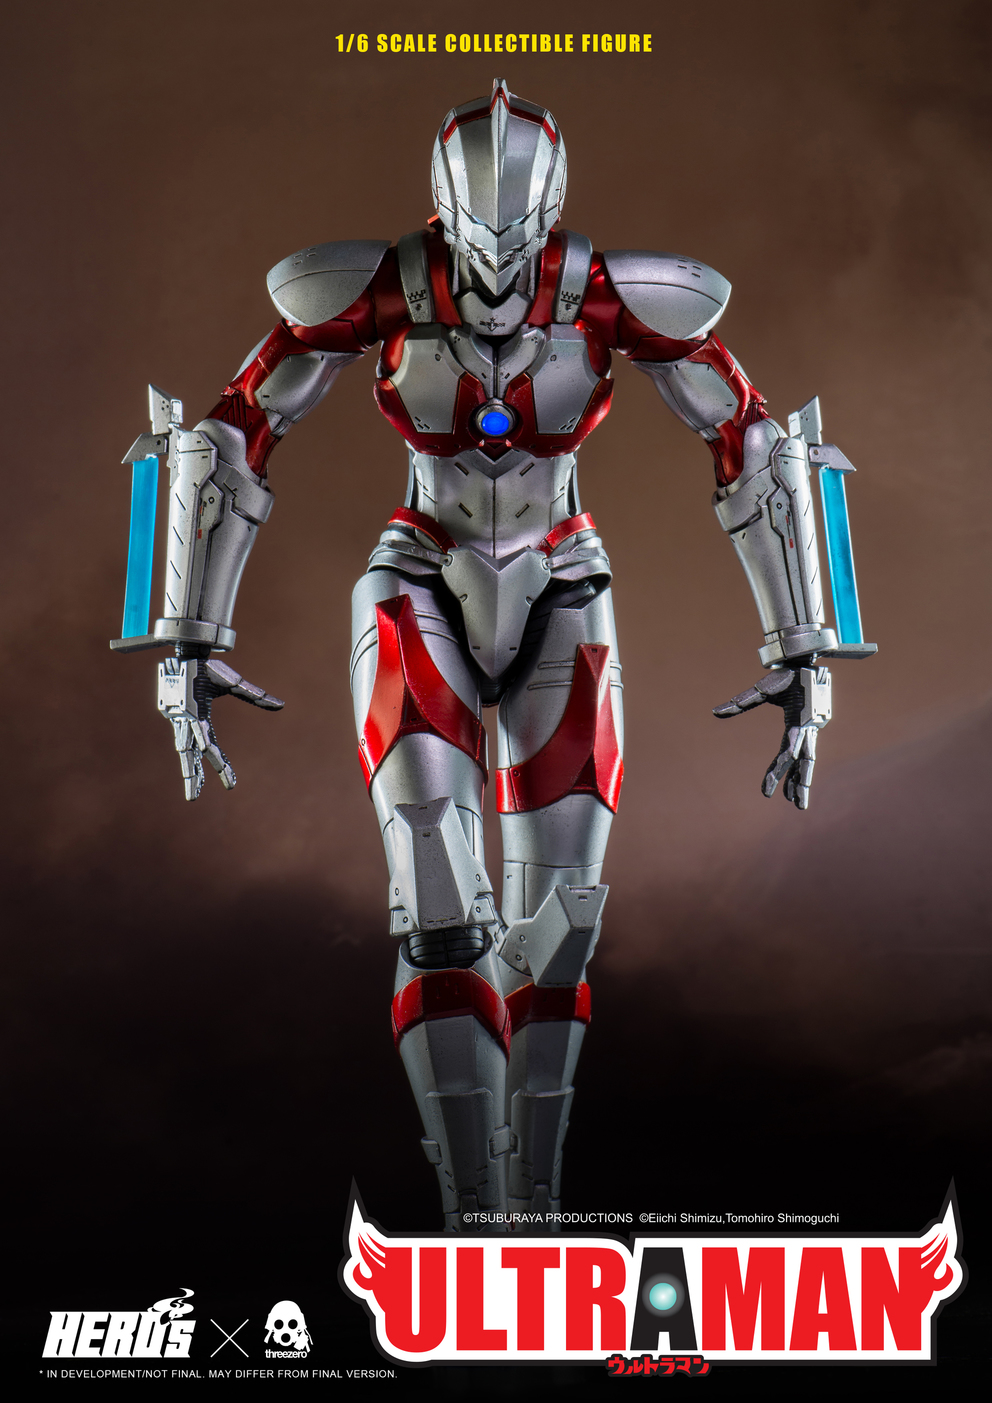 World of 3A ULTRAMAN SUIT 1/6 Scale Collectible Figure